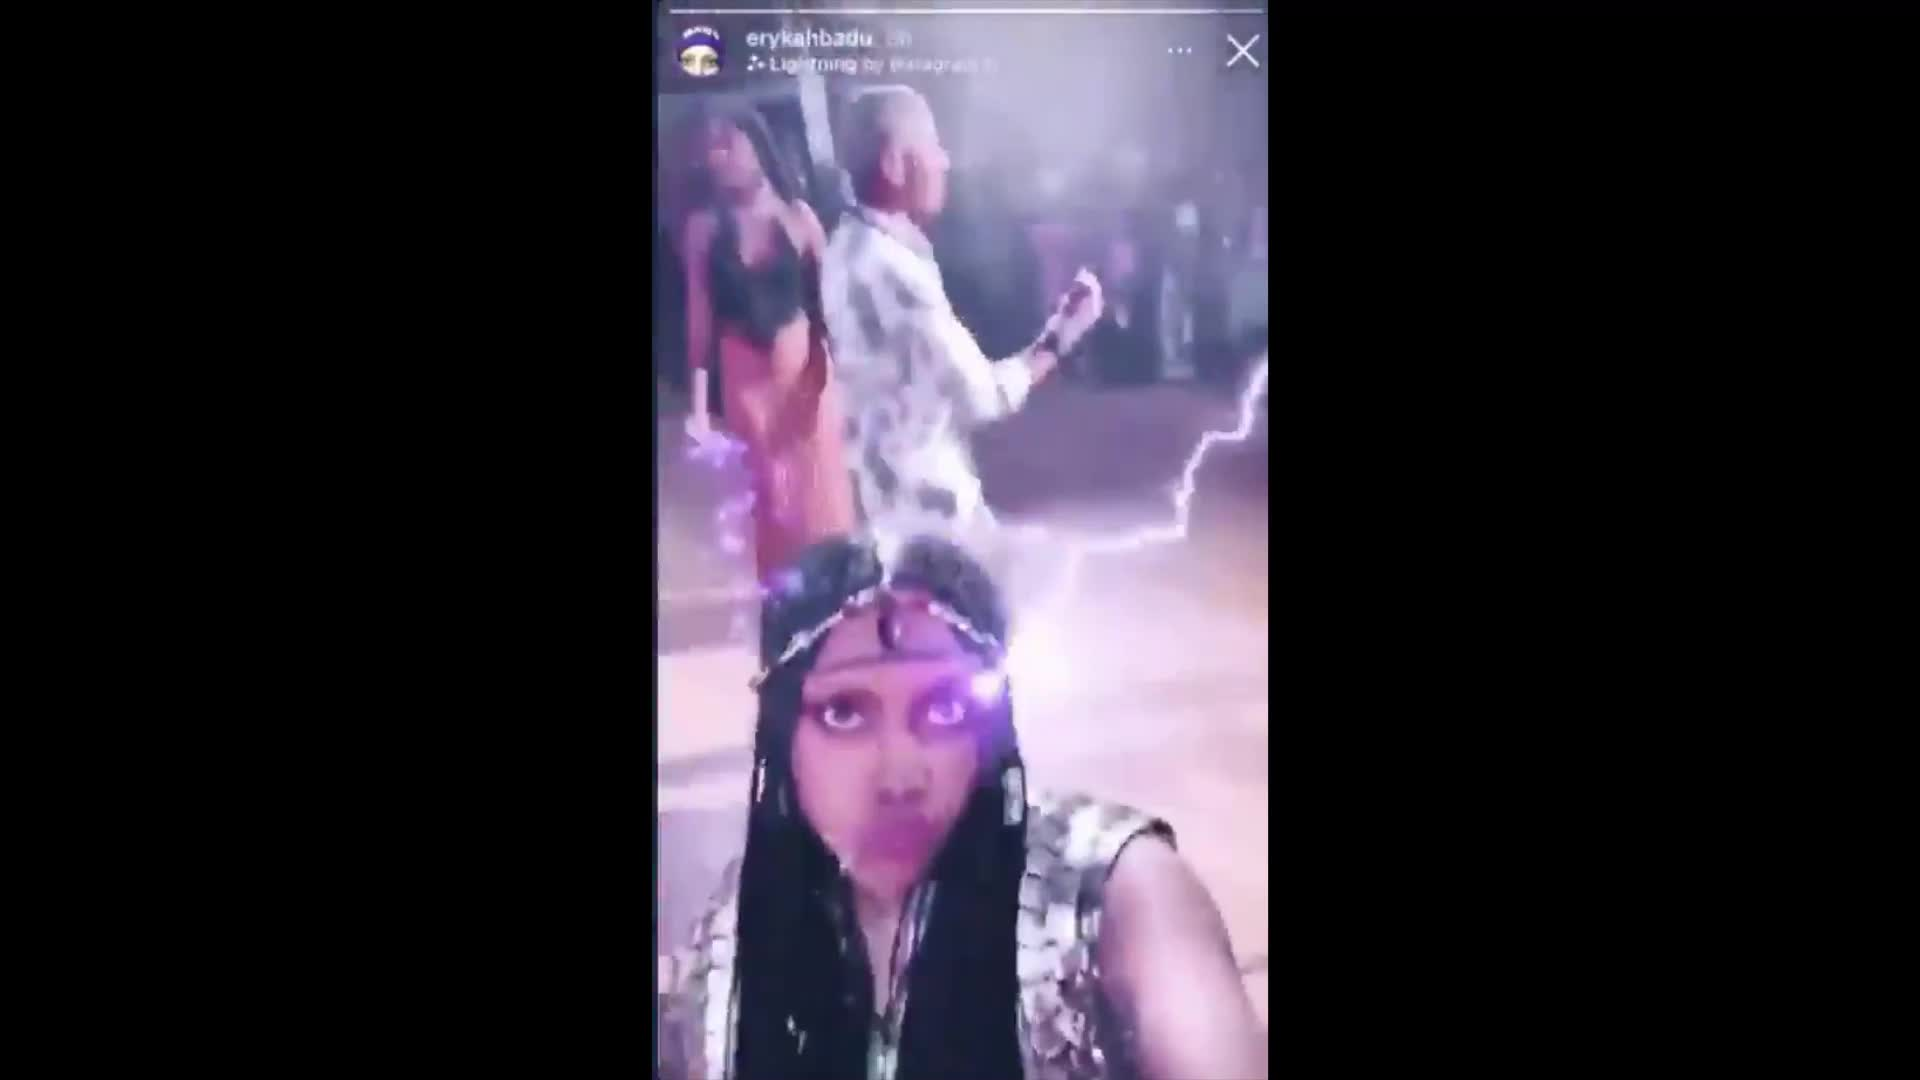 OBAMA INVITED 500 POLITICIANS AND CELEBS TO A PRIVATE BIRTHDAY PARTY AND GAVE THEM FREE WEED! THESE SAME POLITICIANS WANT YOU LOCKED DOWN AND YOUR KIDS TO BE MASKED!